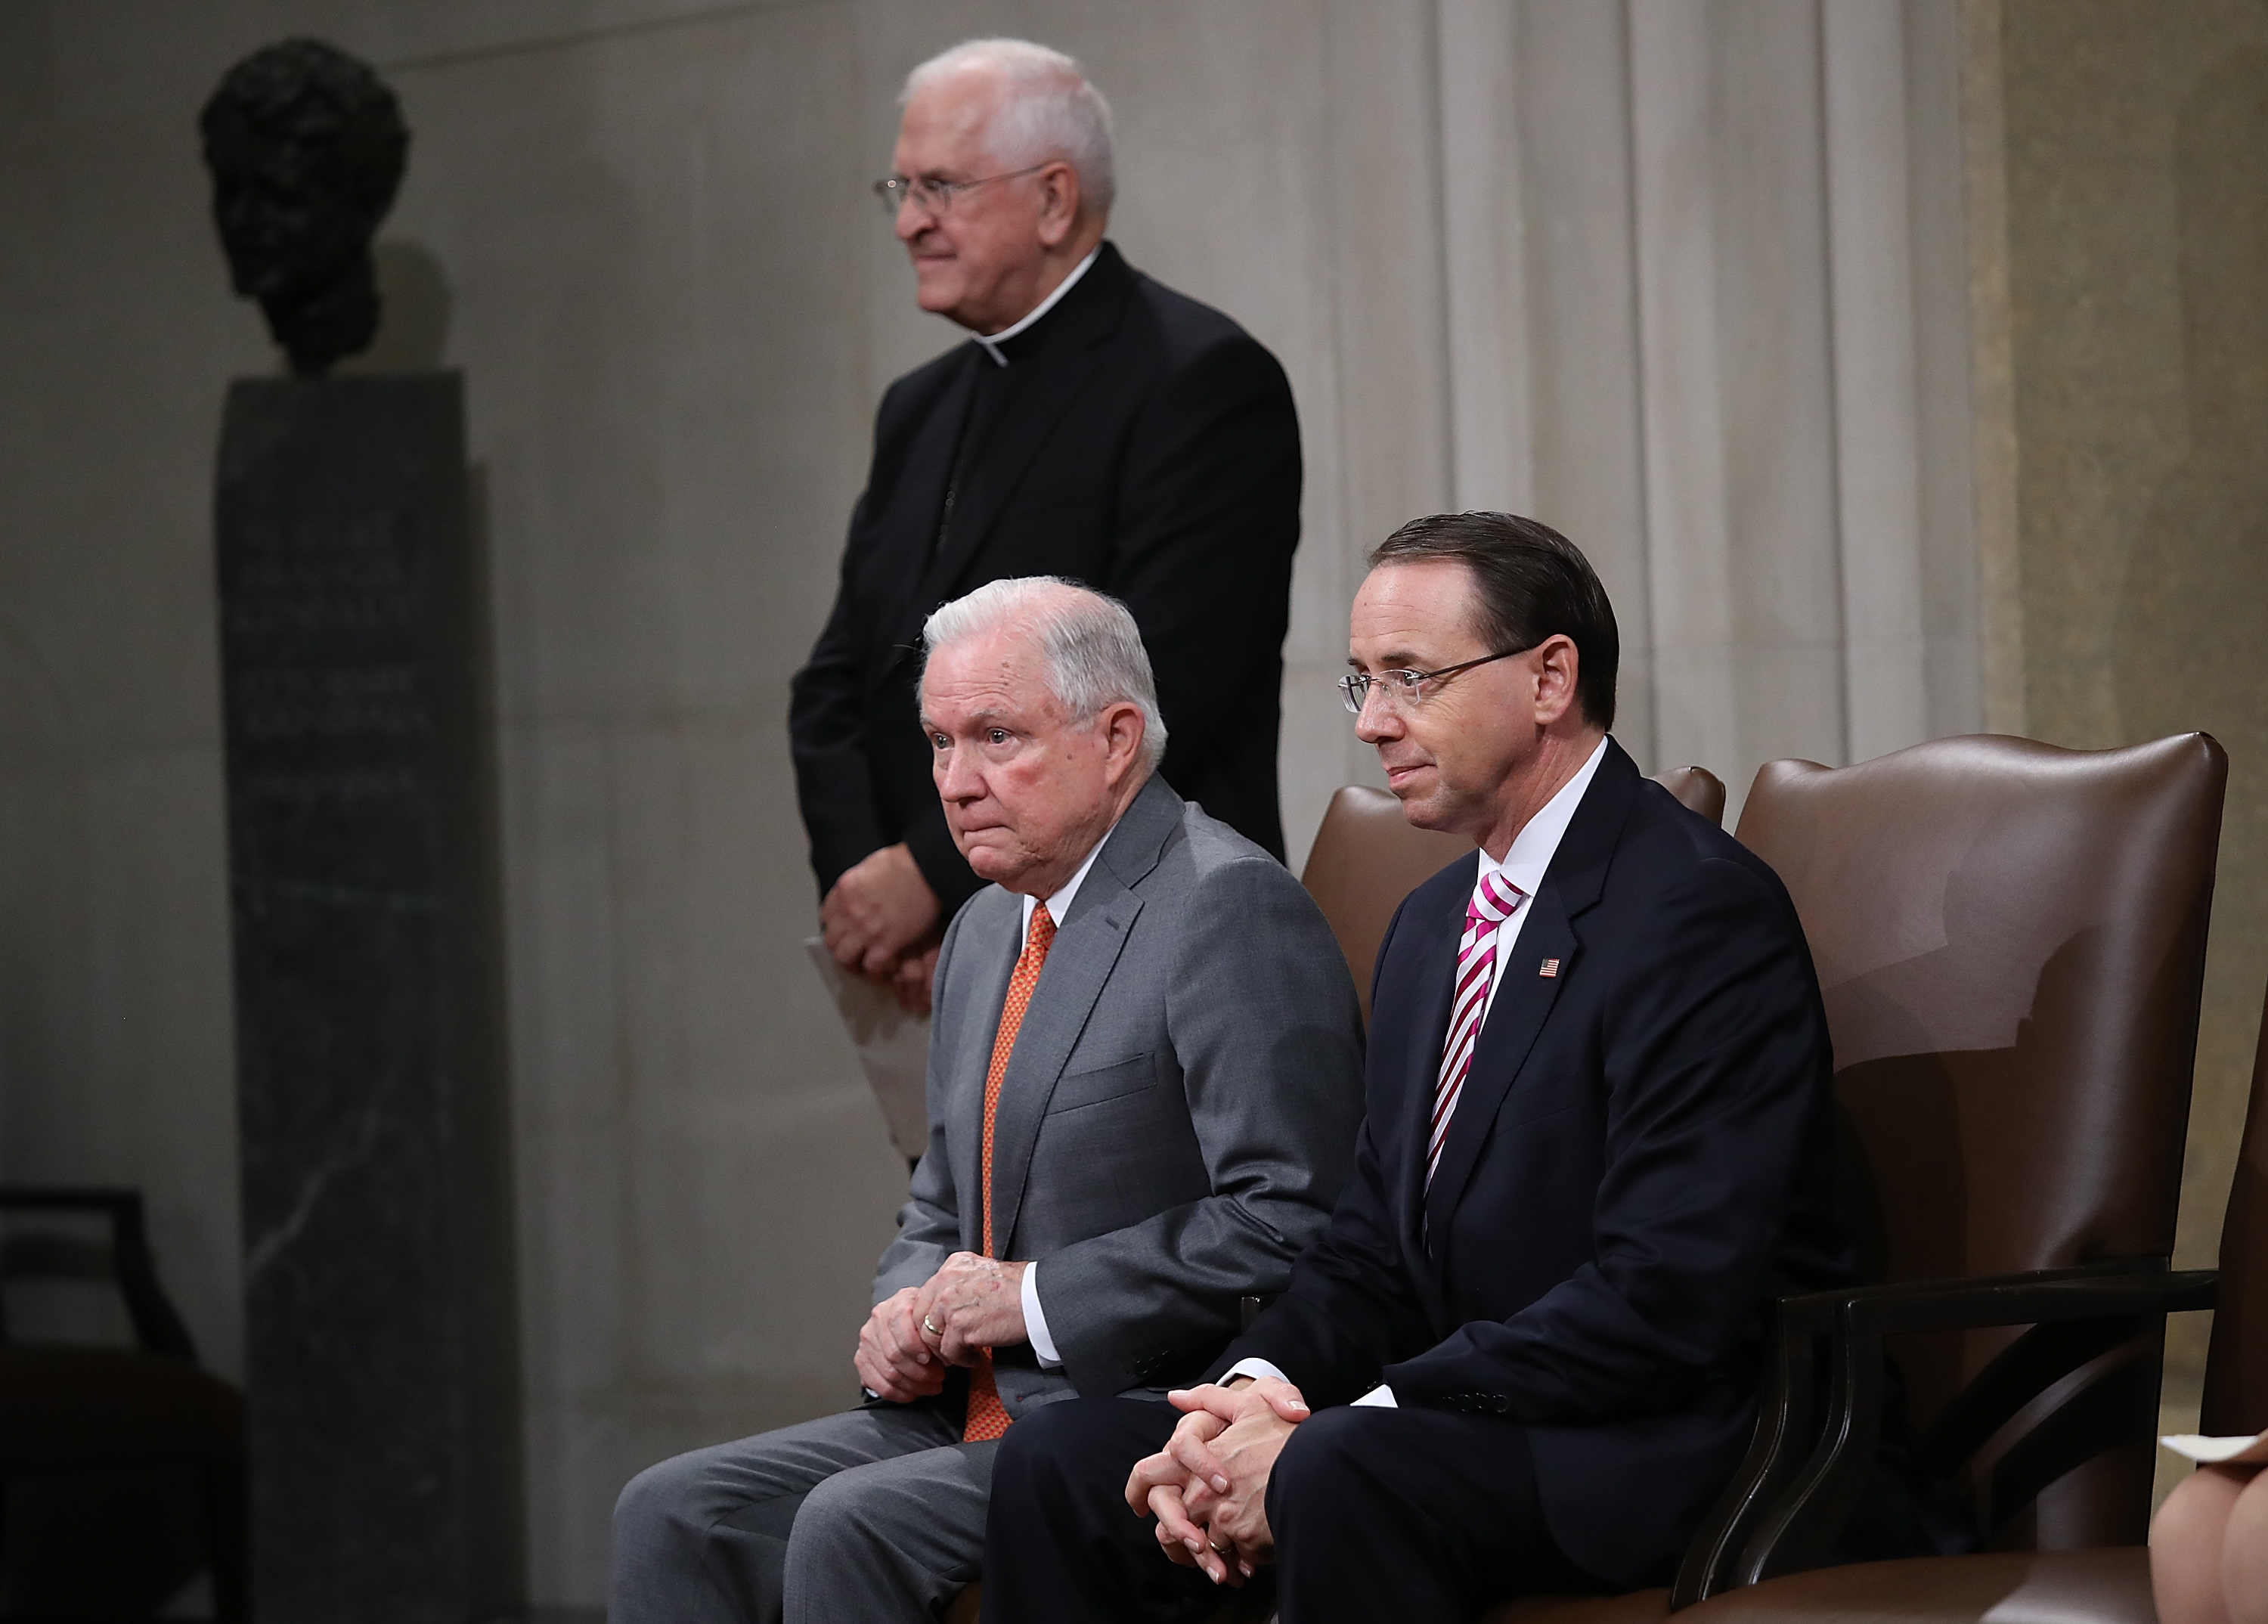 US Attorney General Jeff Sessions (C) and Deputy Attorney General Rod Rosenstein (R) attend the Religious Liberty Summit at the Department of Justice, on July 30. Also pictured is Archbishop Joseph Kurtz (L), chairman of the Committee for Religious Libert